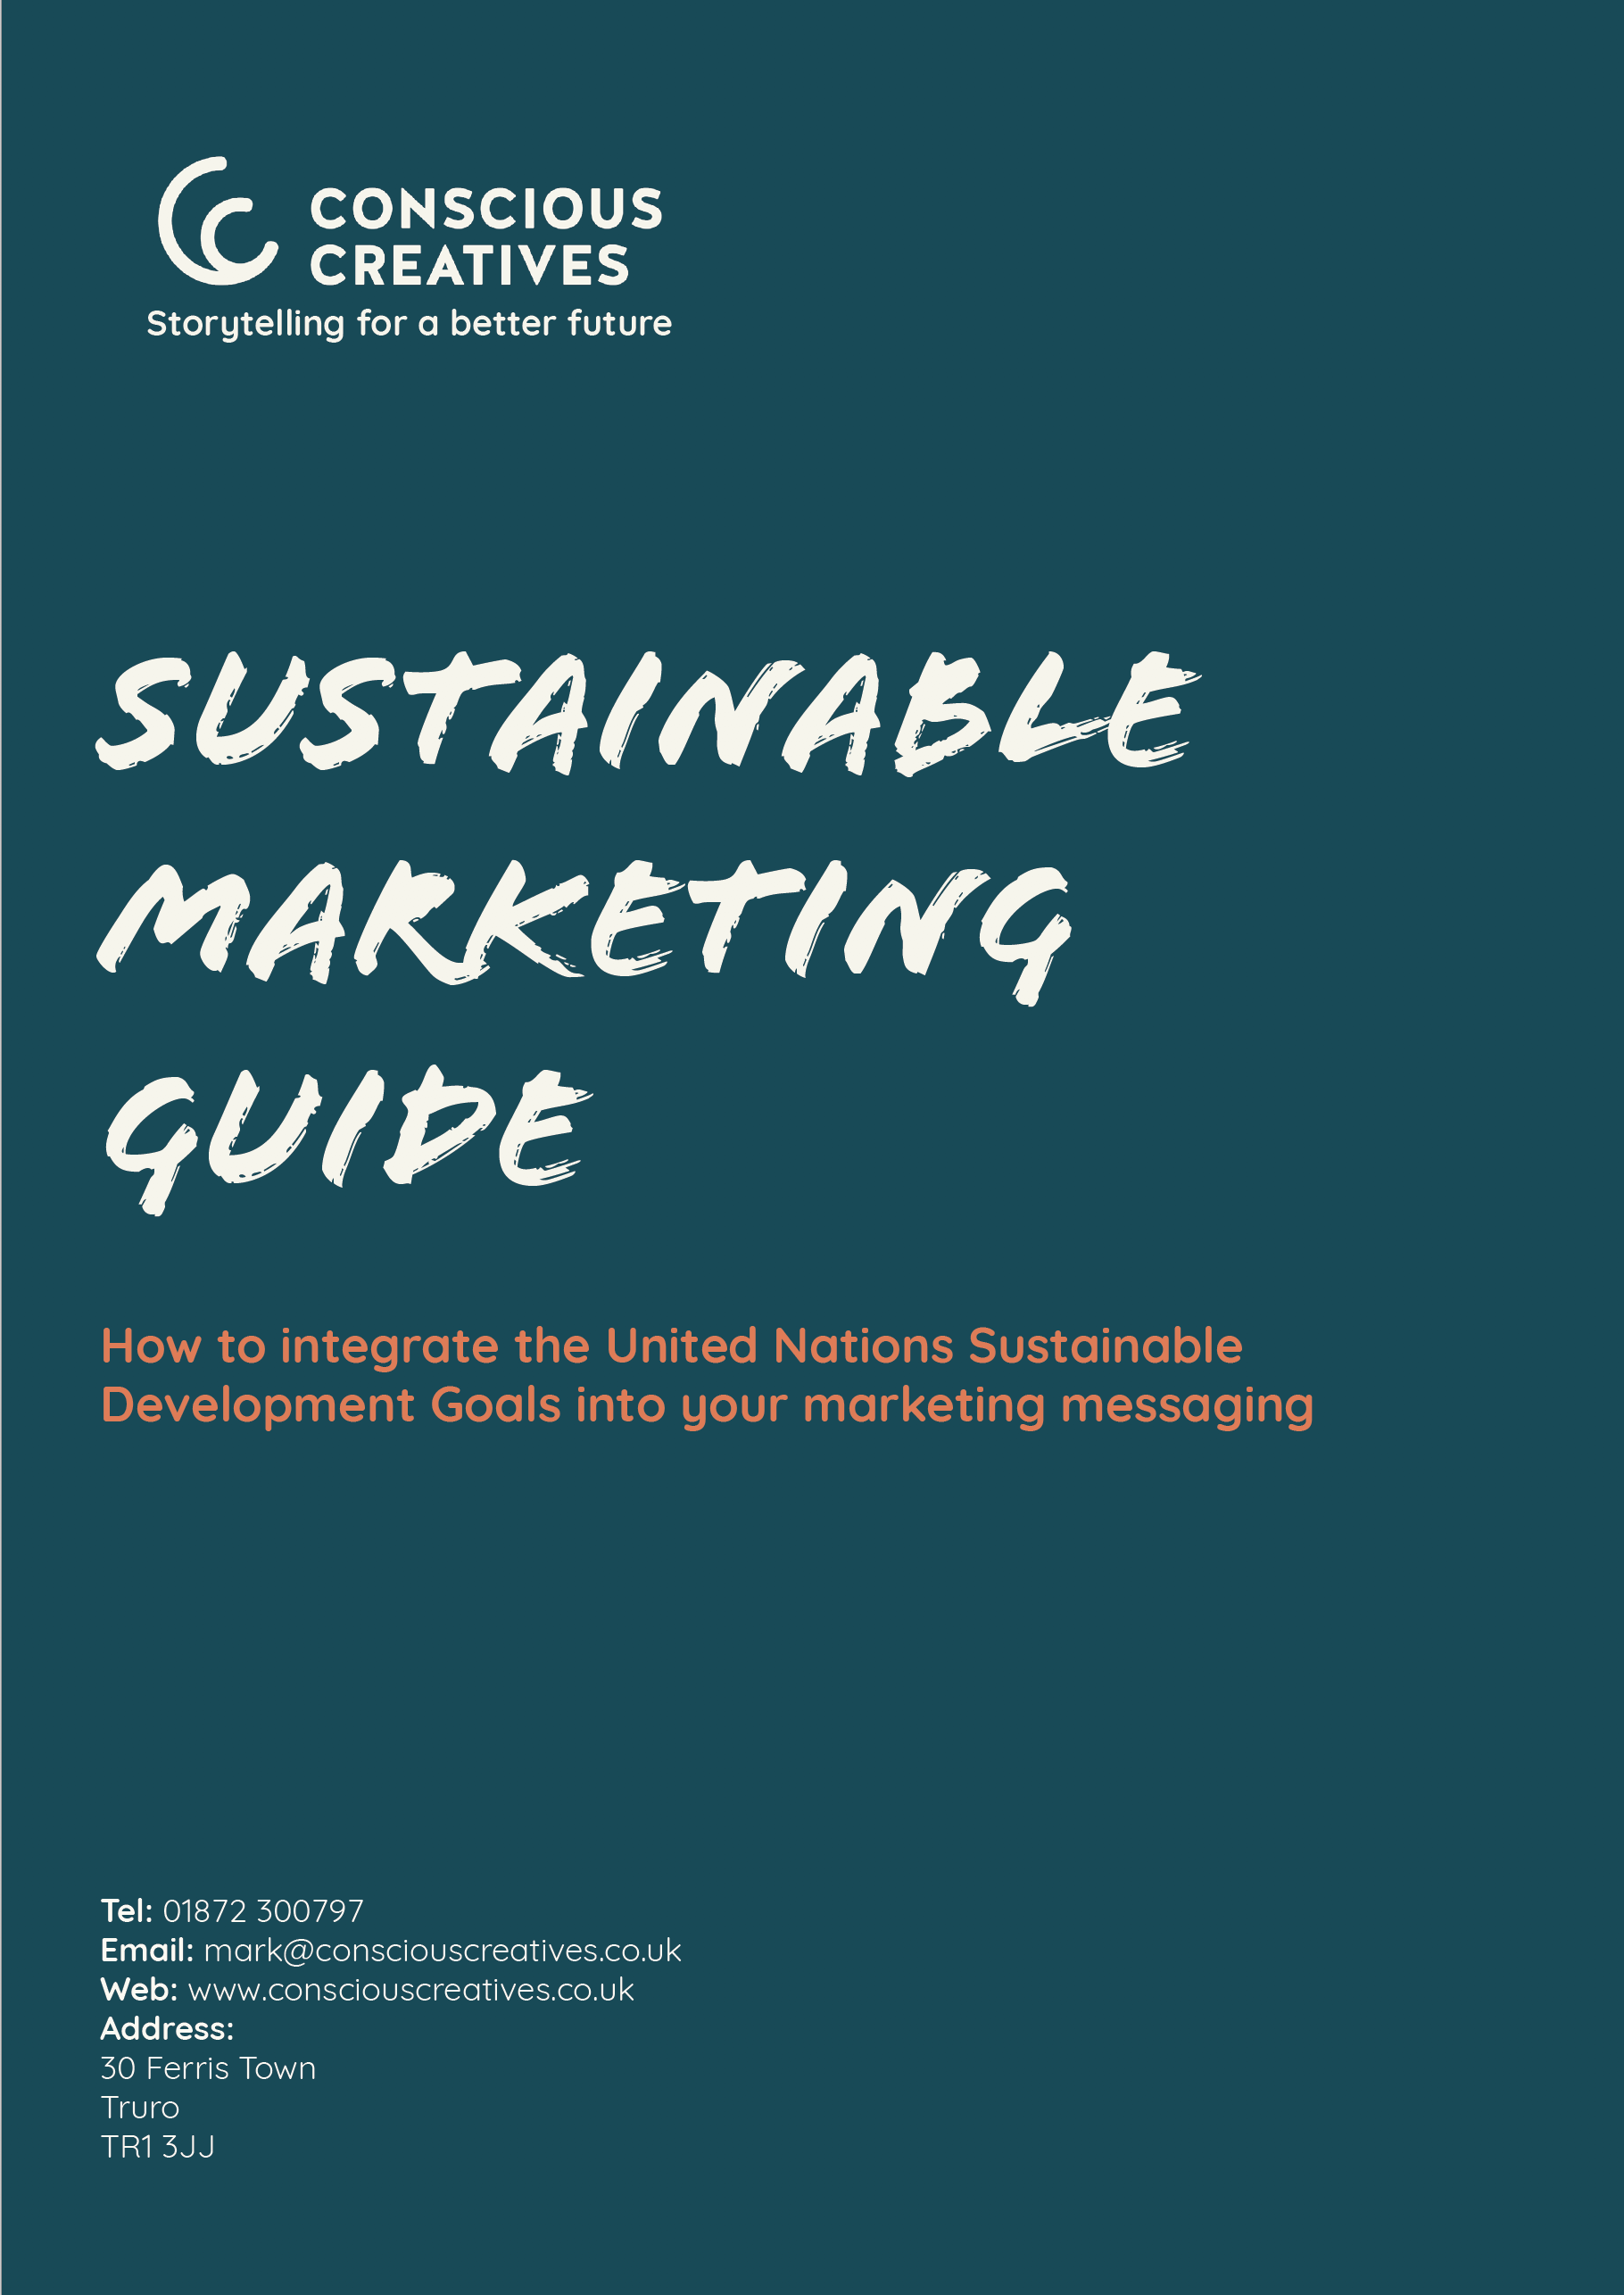 sustainable marketing guide hero shot